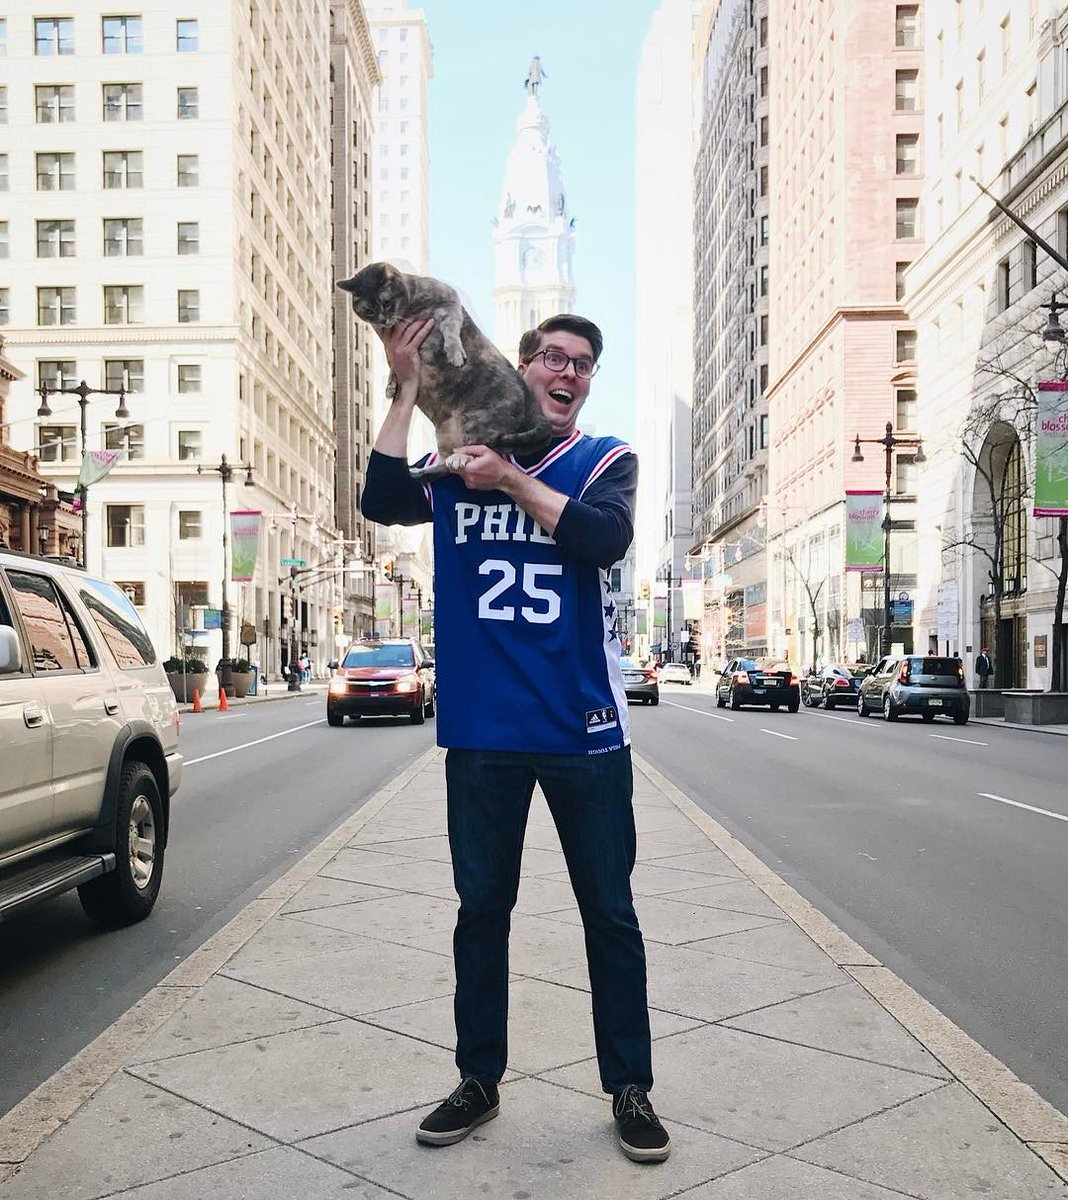 Paying homage to a @Sixers season which had a lot of downs, yes, but also a lot of... ups. cc @GipperGrove #RaiseTheCat #Sixers #76ers